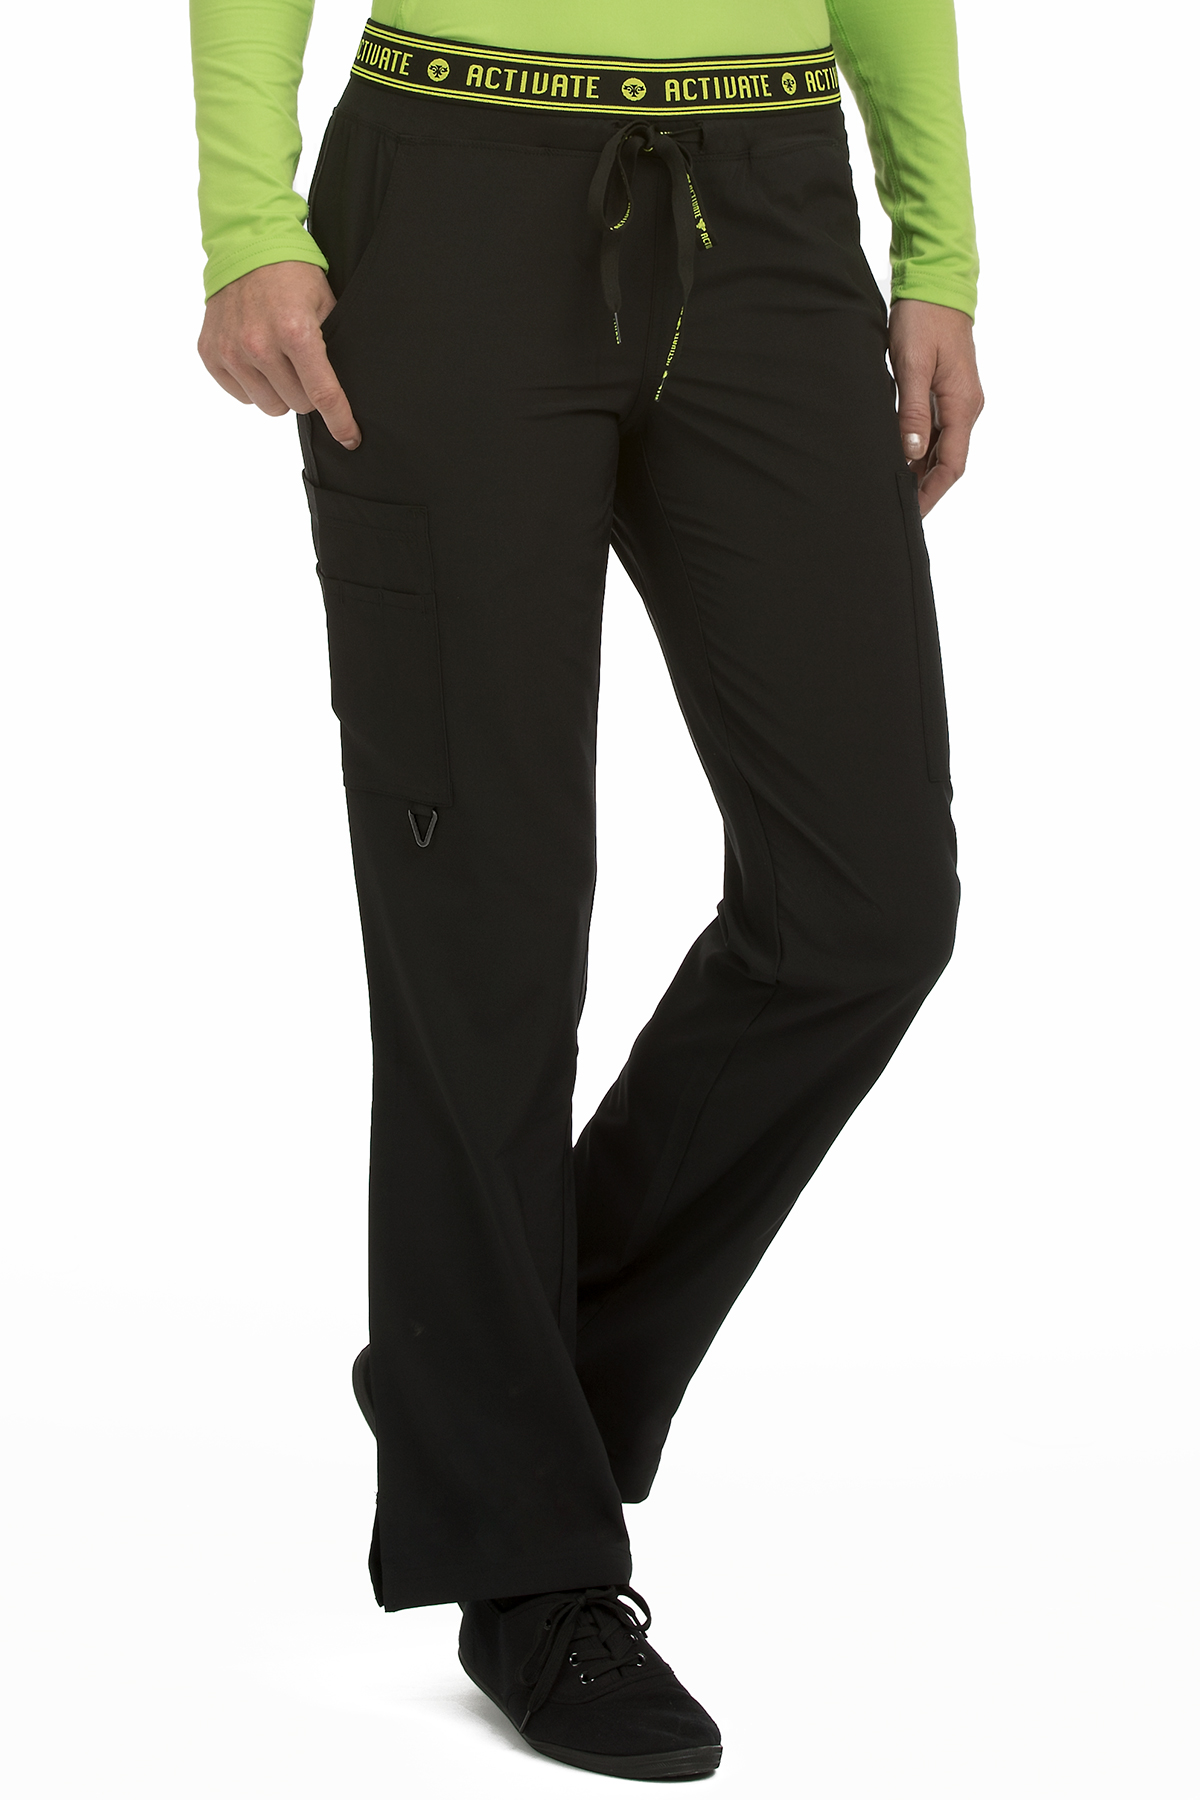 Flow Yoga Cargo Pant-Med Couture